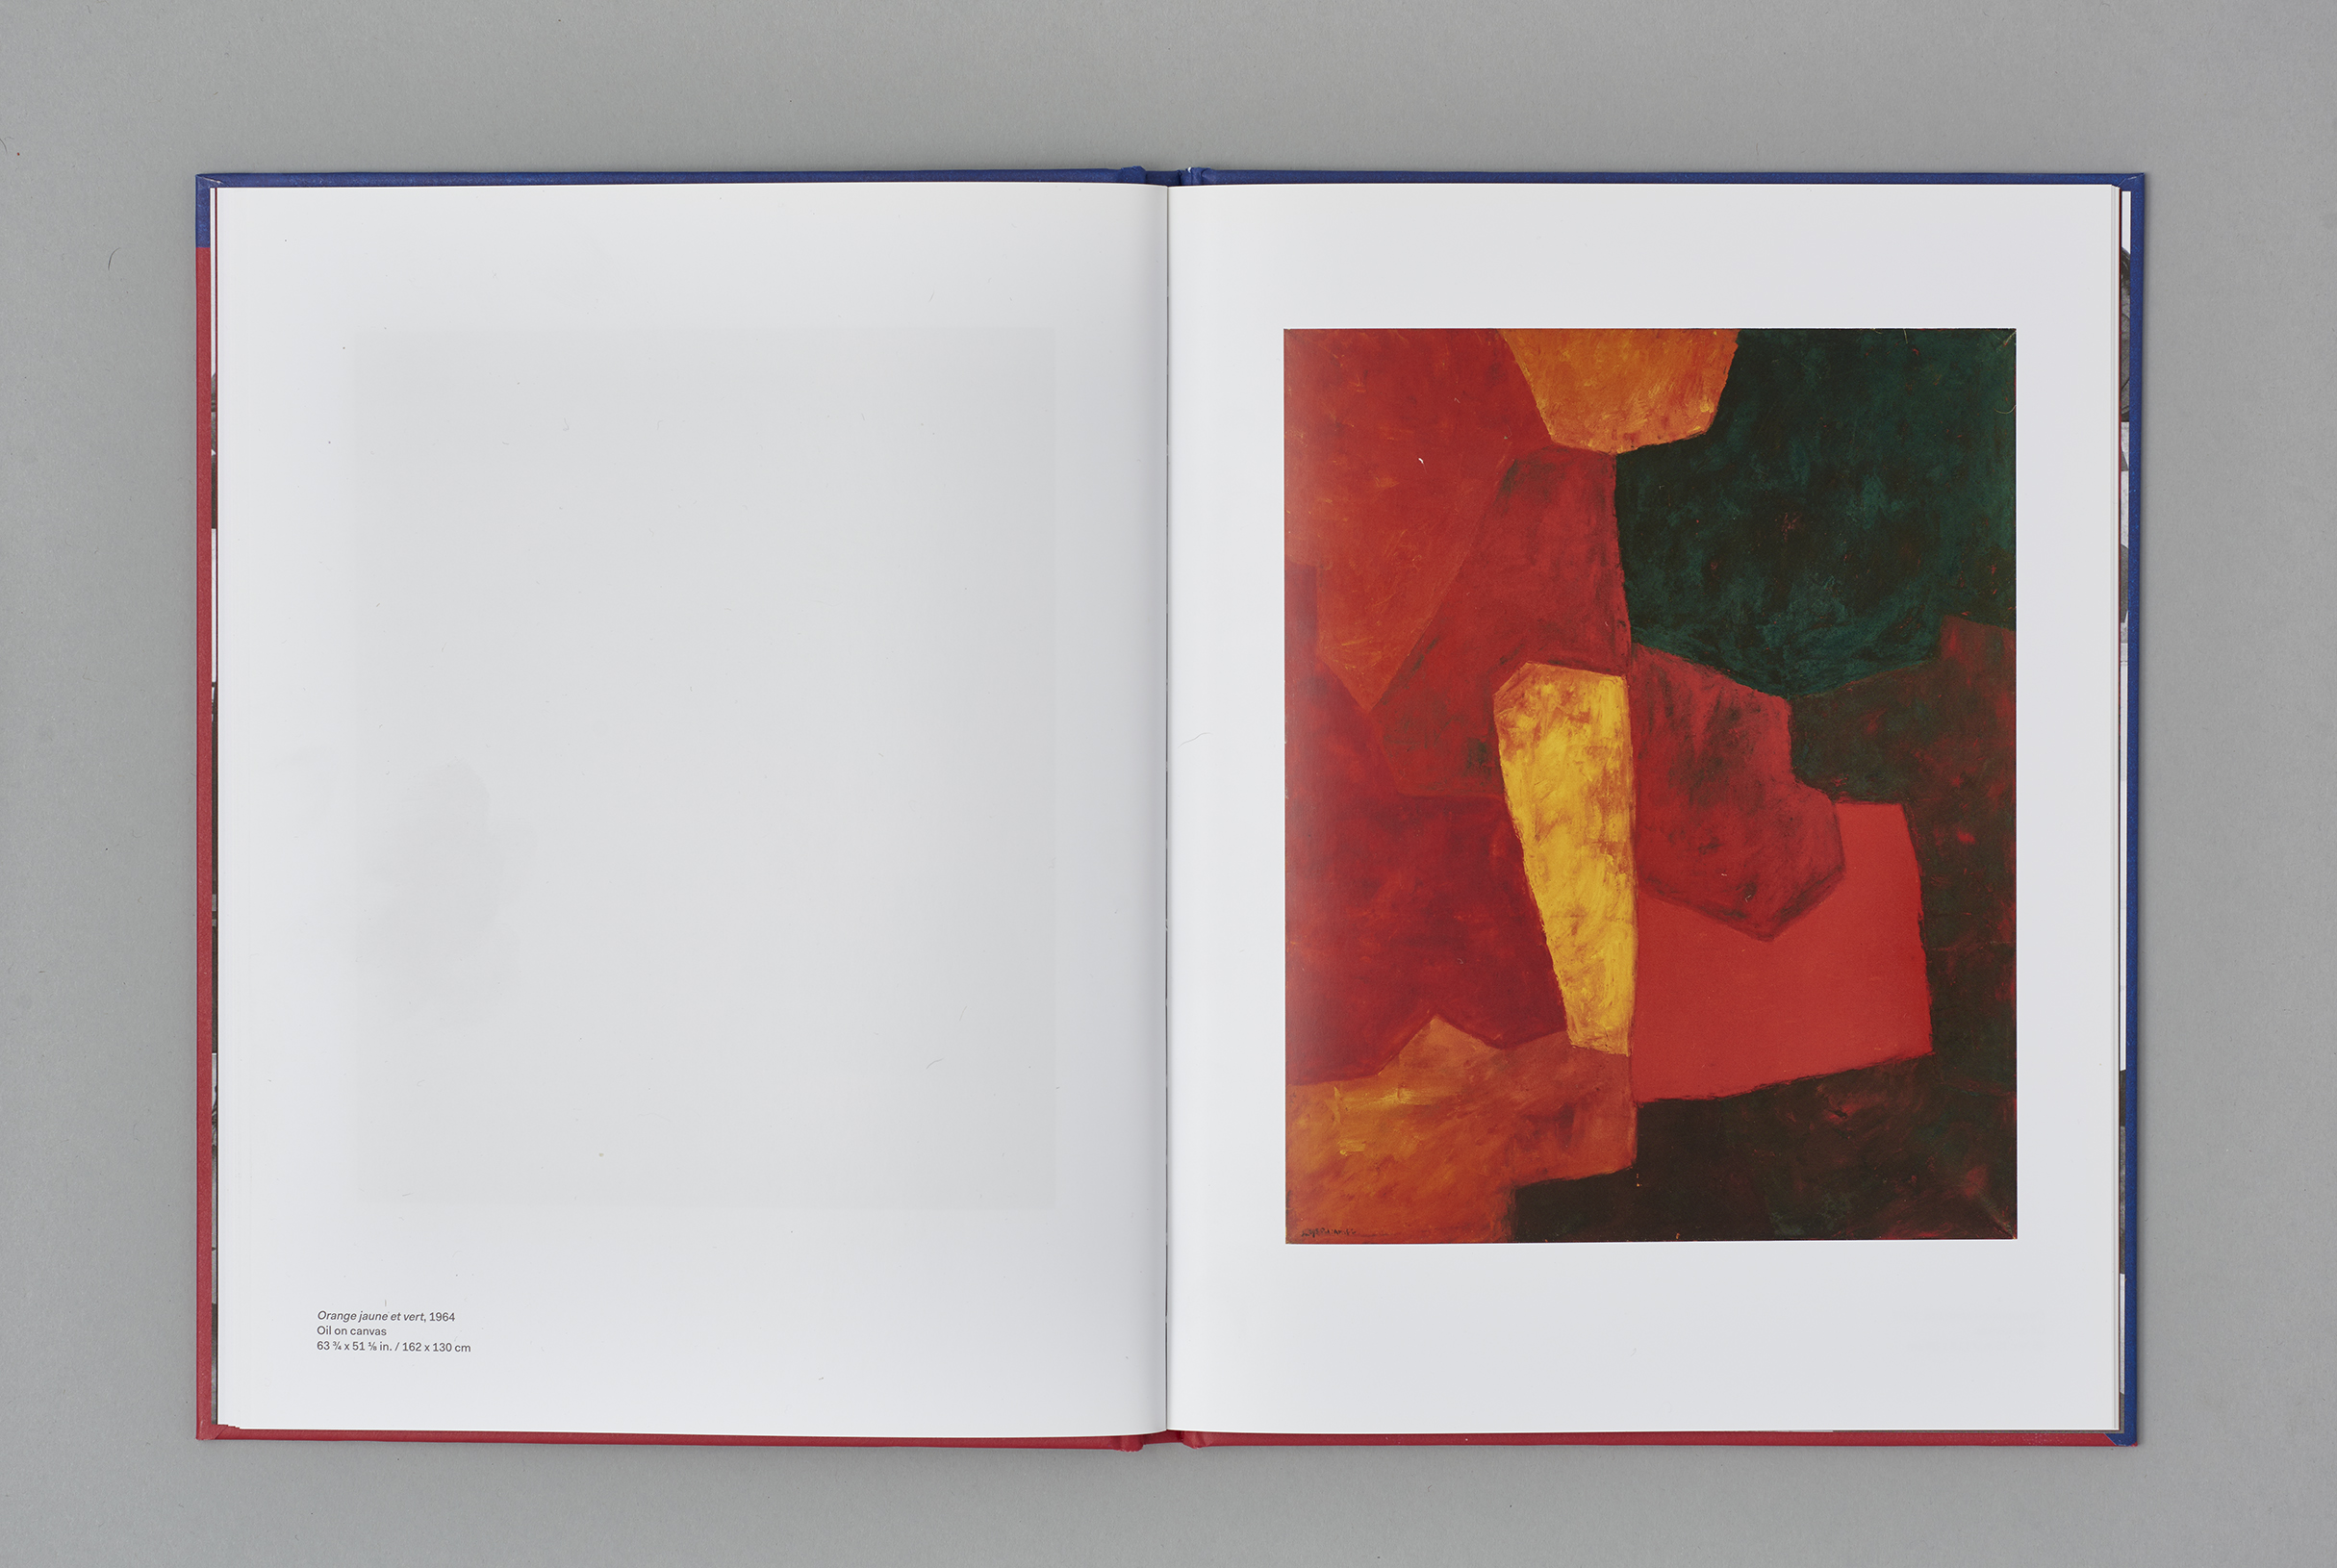 Serge Poliakoff: Silent Paintings